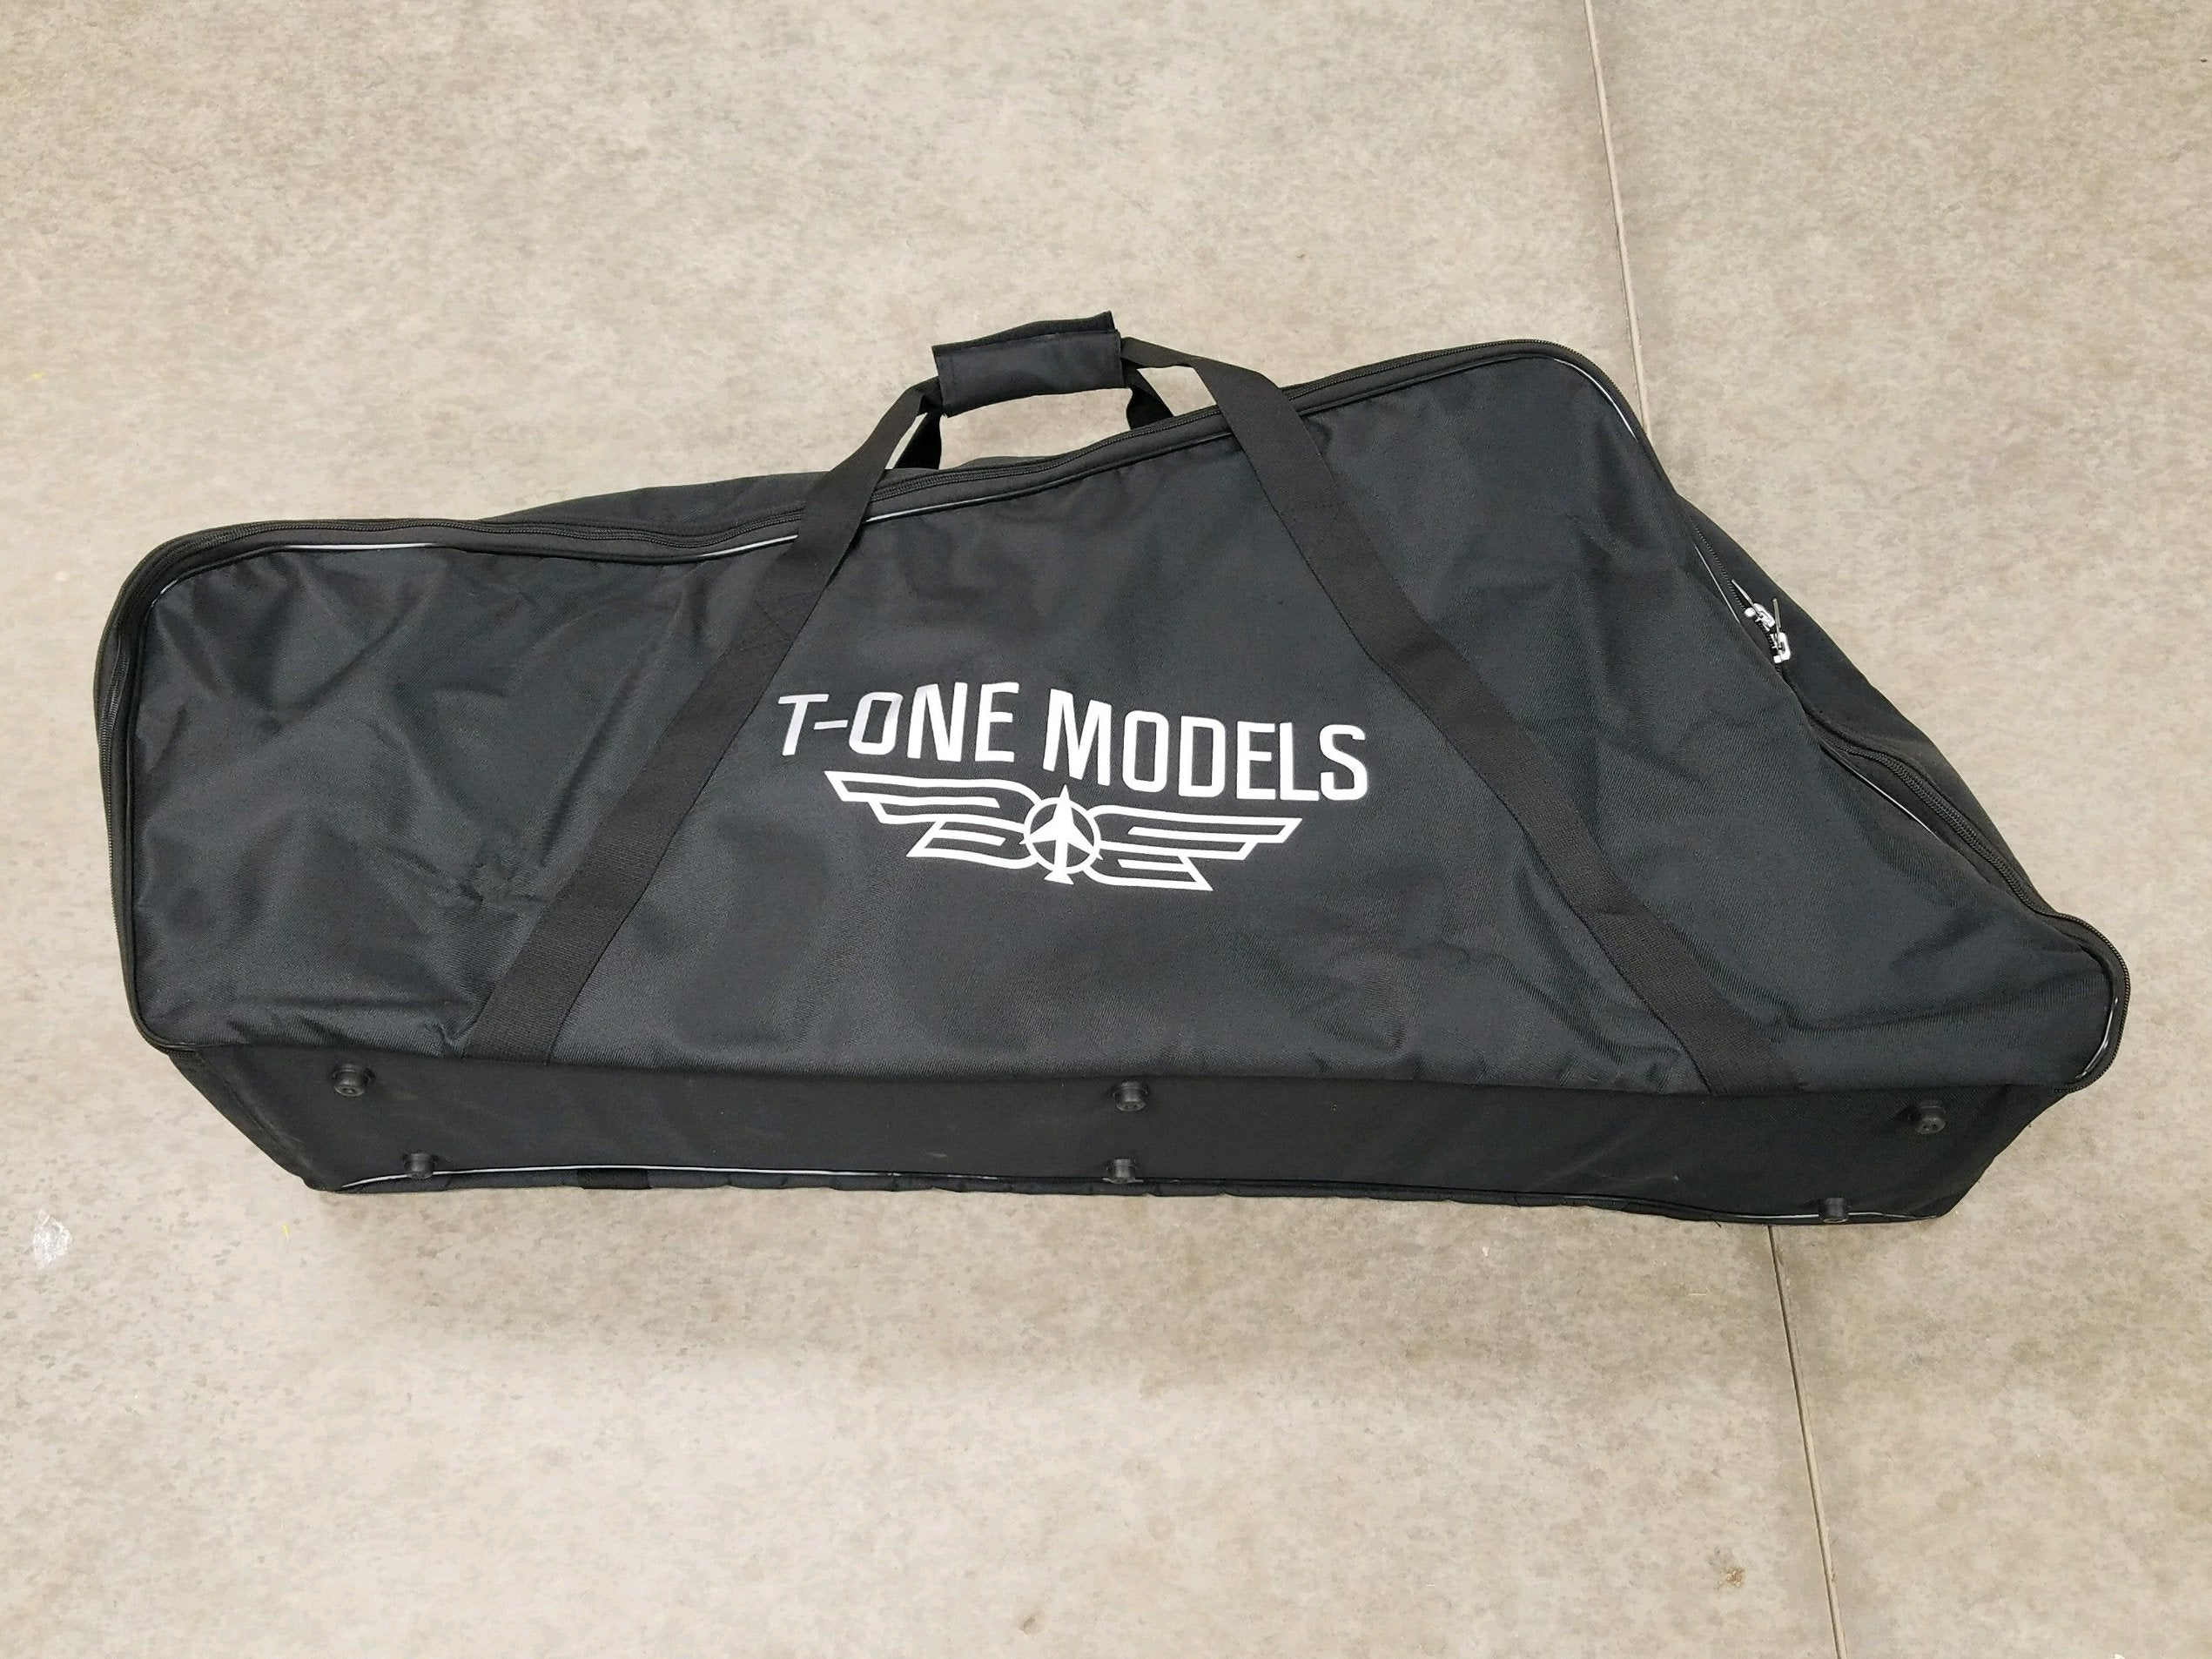 T-One Hawk Jet Wing and Stab Soft Case